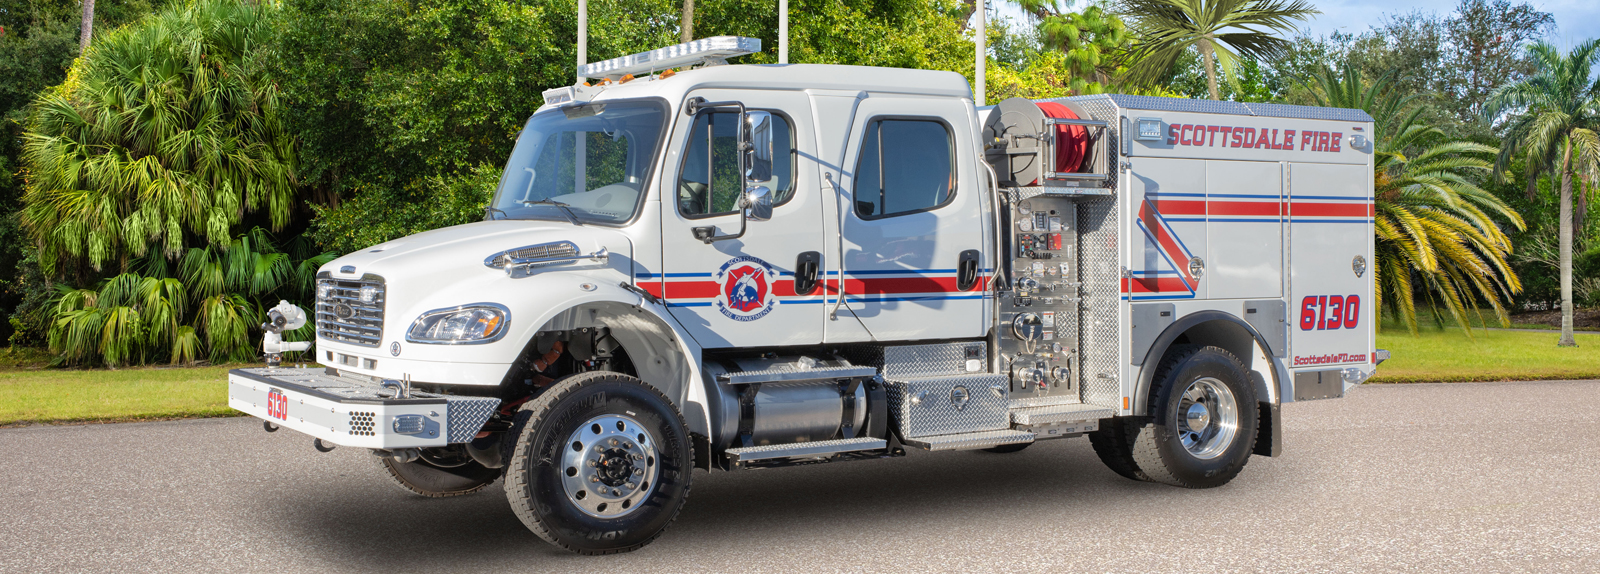 A white type 3 fire truck is parked showing the driver's side detail with trees in the background.